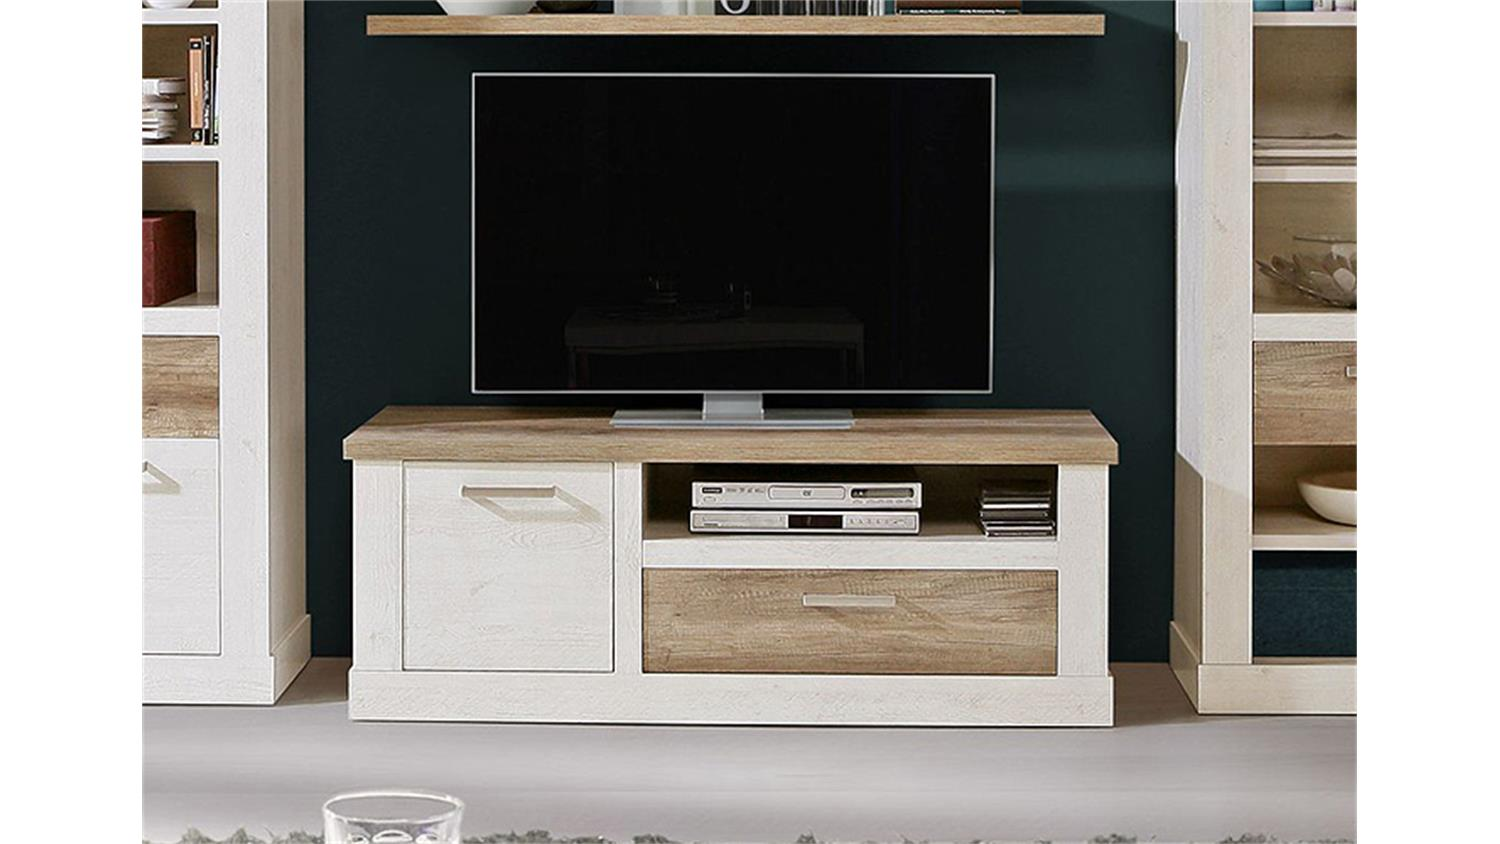 tvunterschrank duro tvboard pinie wei und eiche antik tv unter schrank. Black Bedroom Furniture Sets. Home Design Ideas